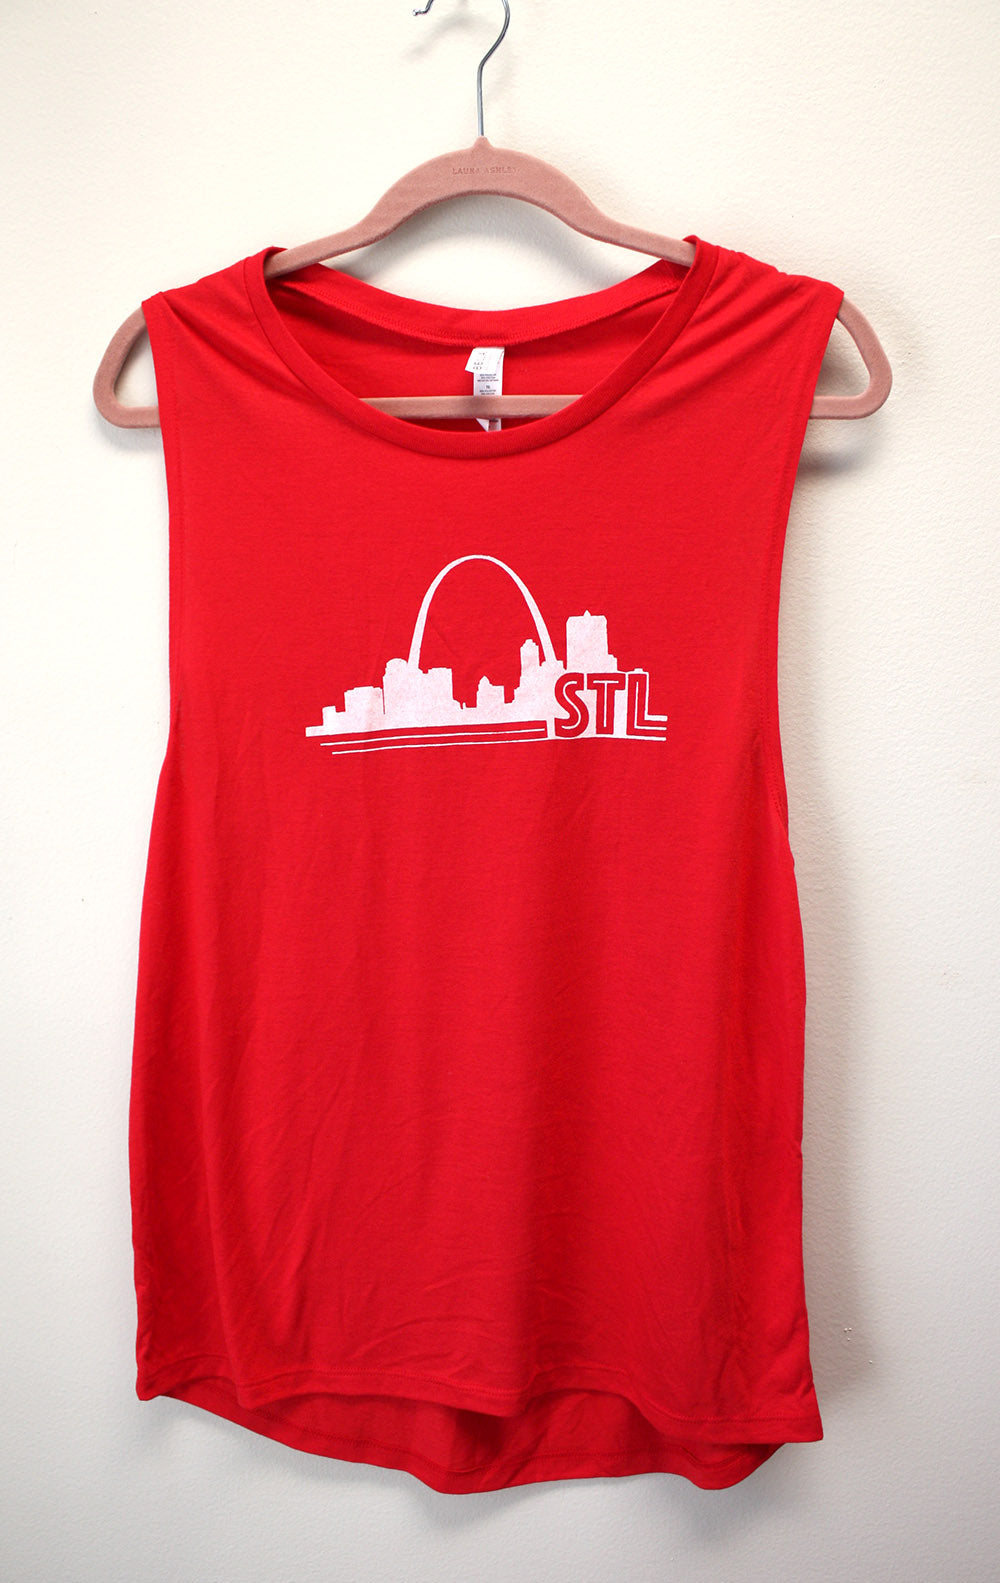 Women's St. Louis Print Muscle Tank Top